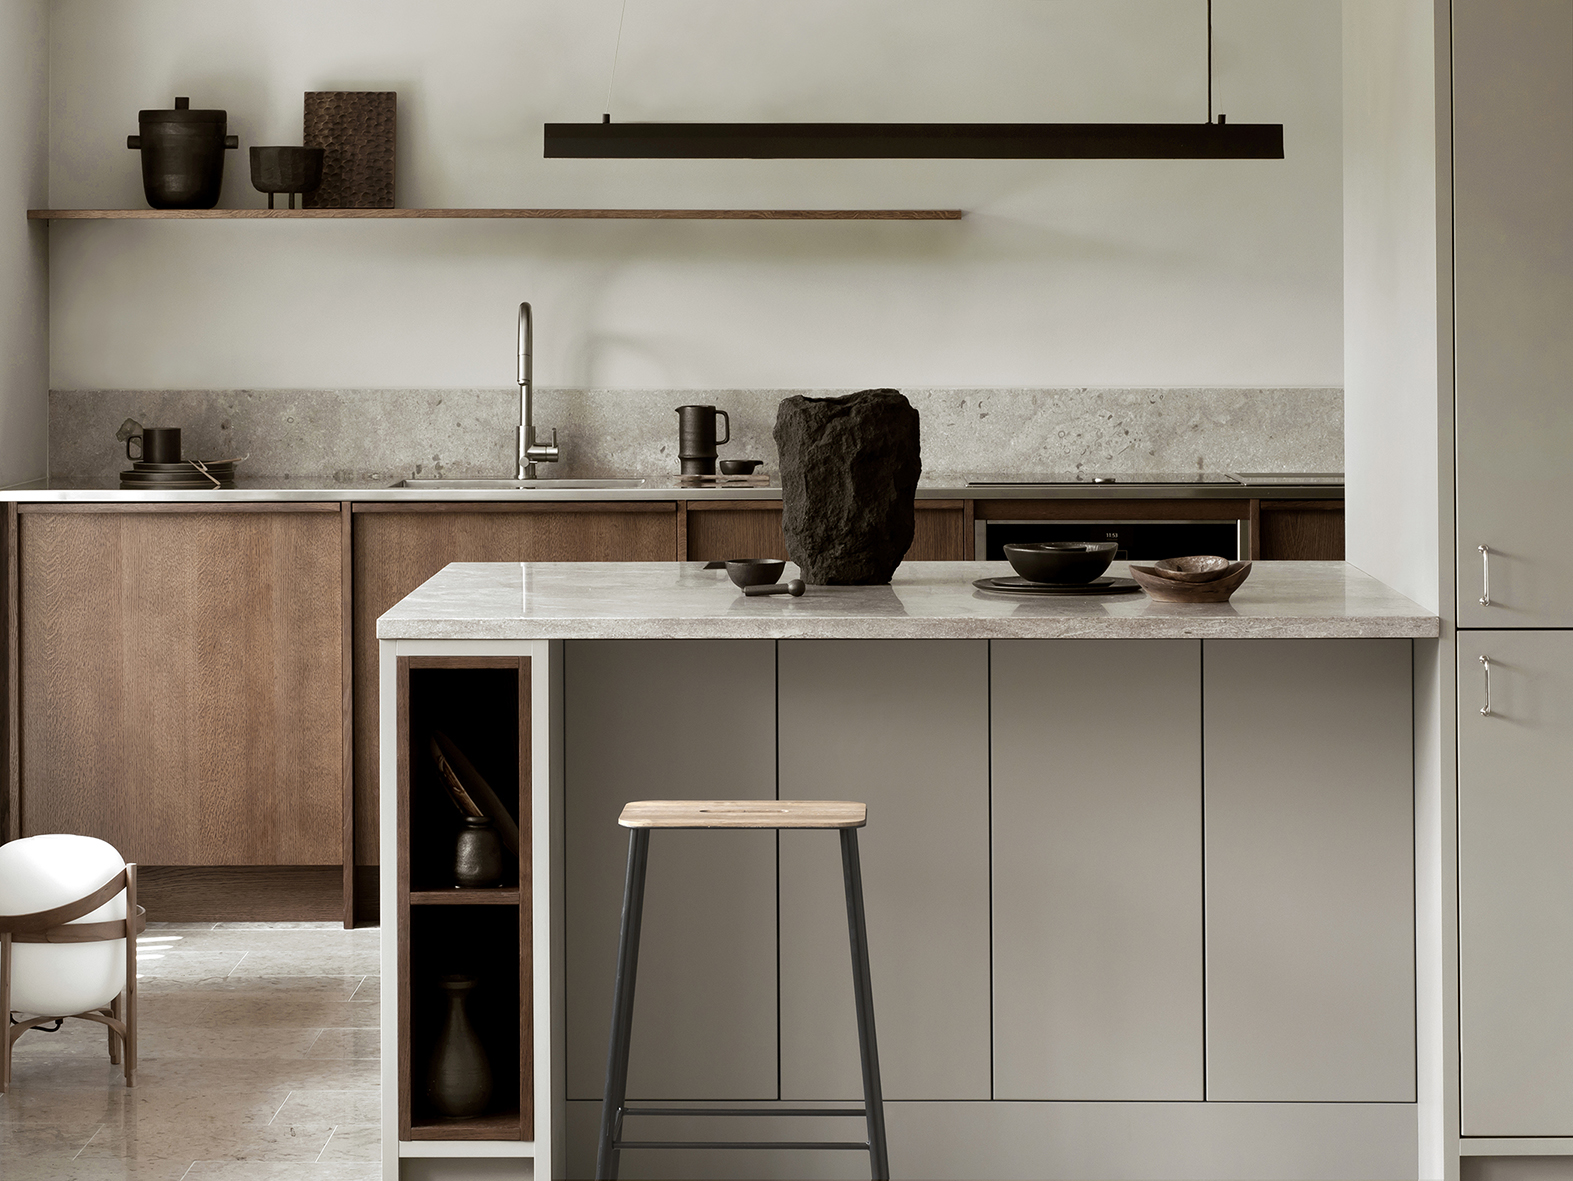 A Kitchen Designed with Contrasting Materials